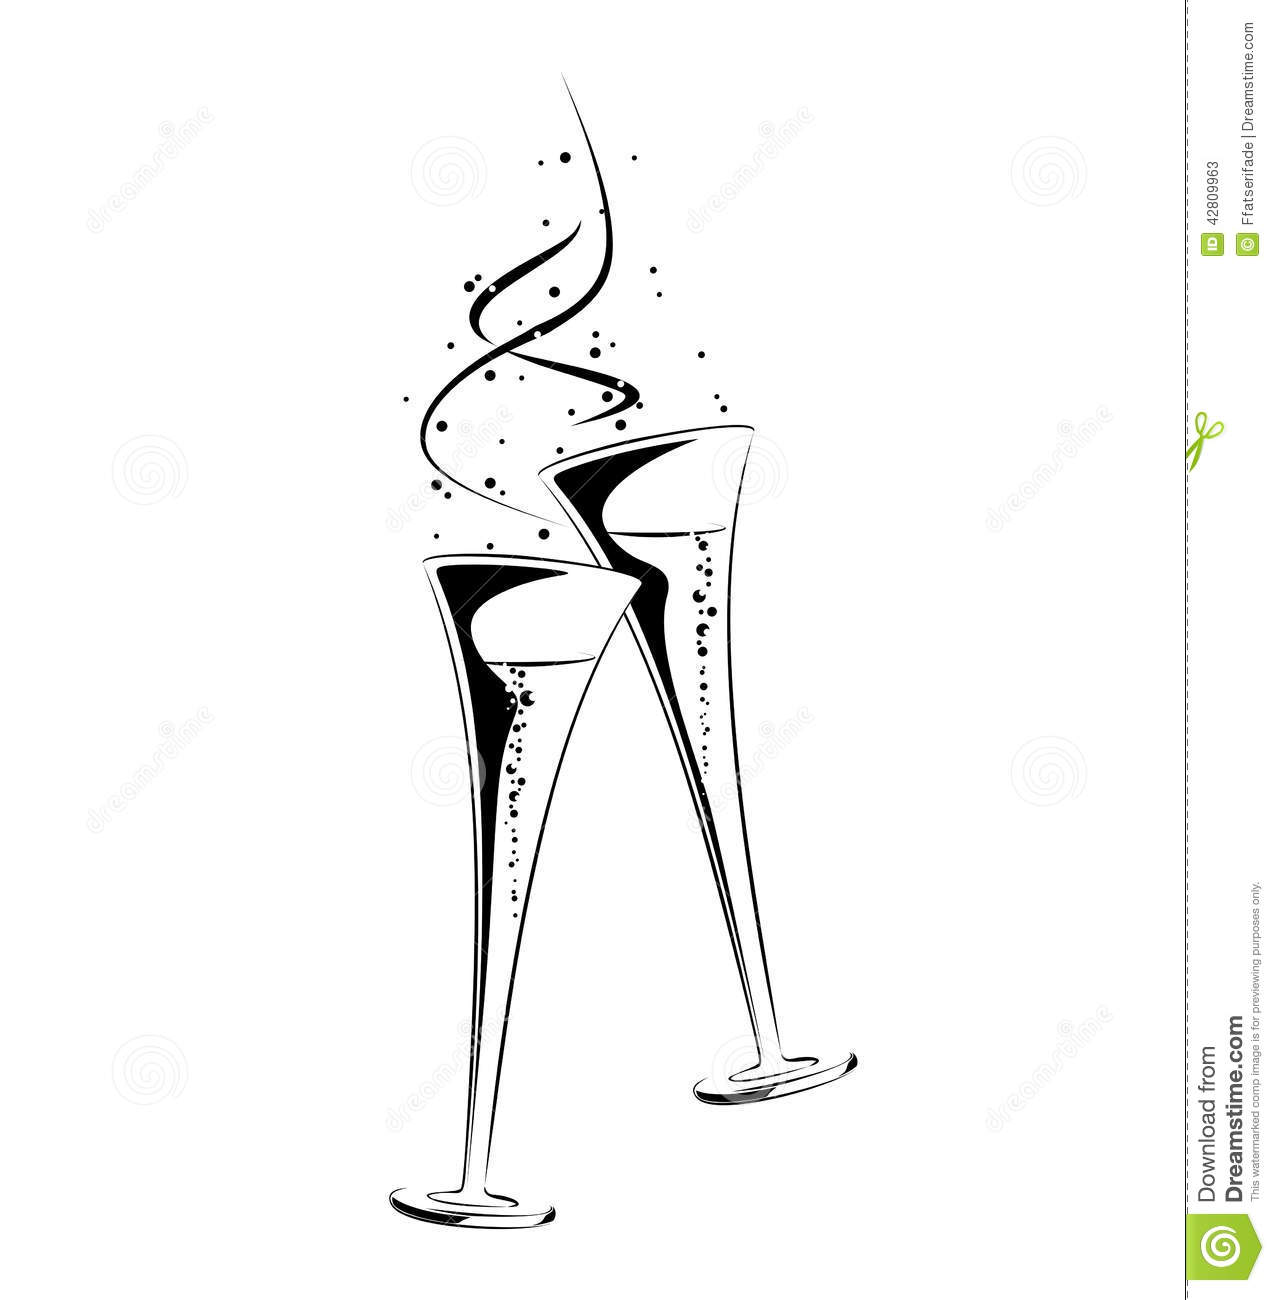 Clocks also Showthread as well Stock Photo Ch agne Glass Two Clinking Glasses Sparkling Wine Image42809963 as well Hot Air Balloon Take Off Coloring Pages besides Cartoon Of Alarm Clock Coloring Pages. on santa claus cartoon face